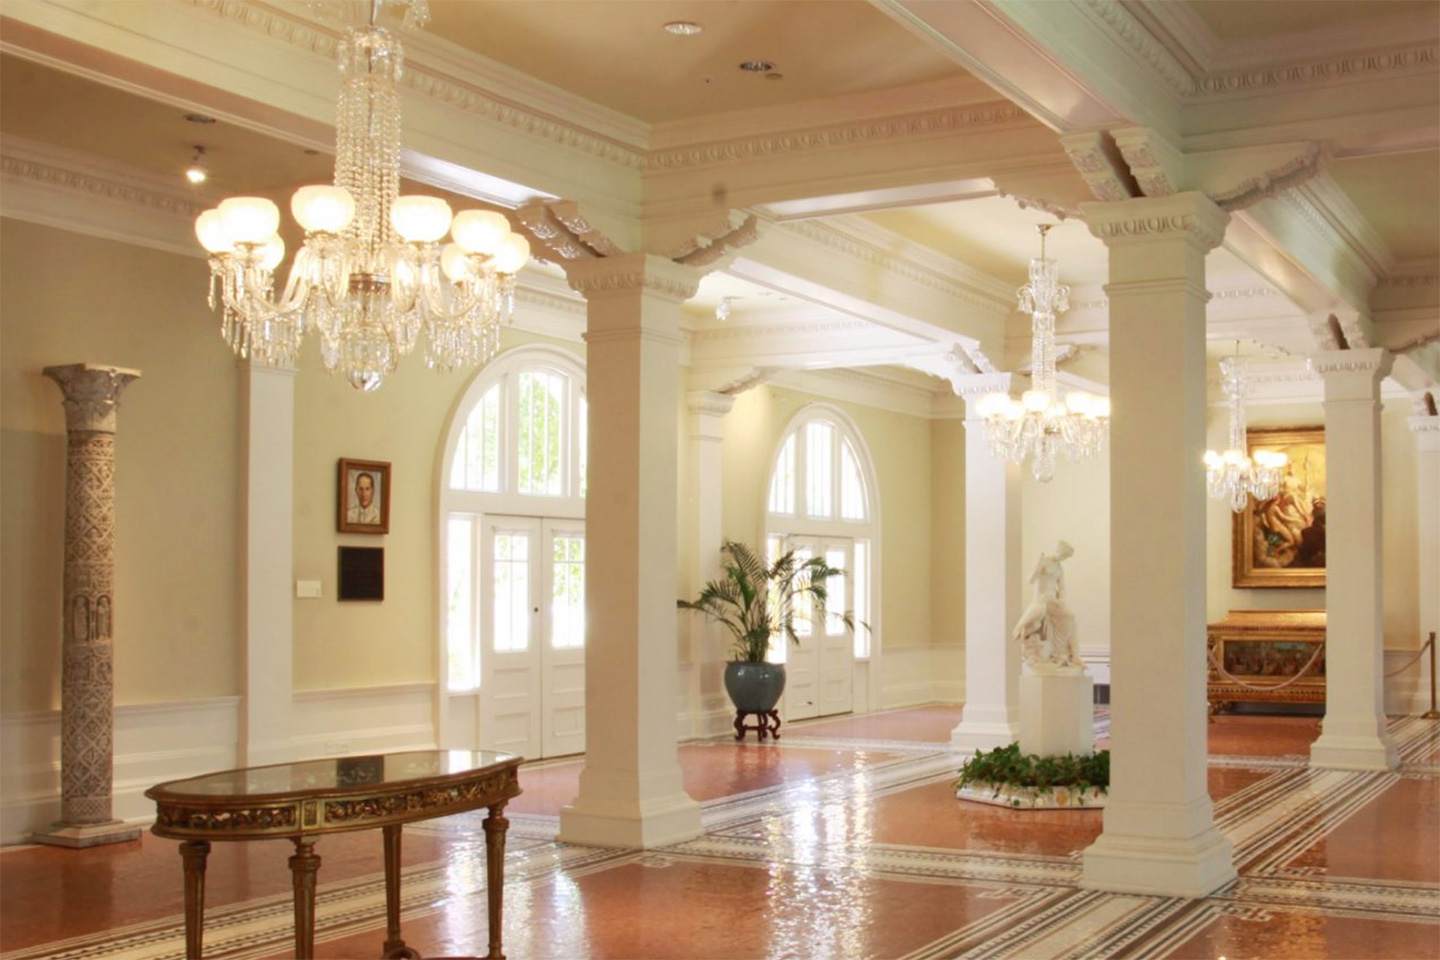 List of Fun Things To Do In St. Augustine, Florida - Lightner Museum